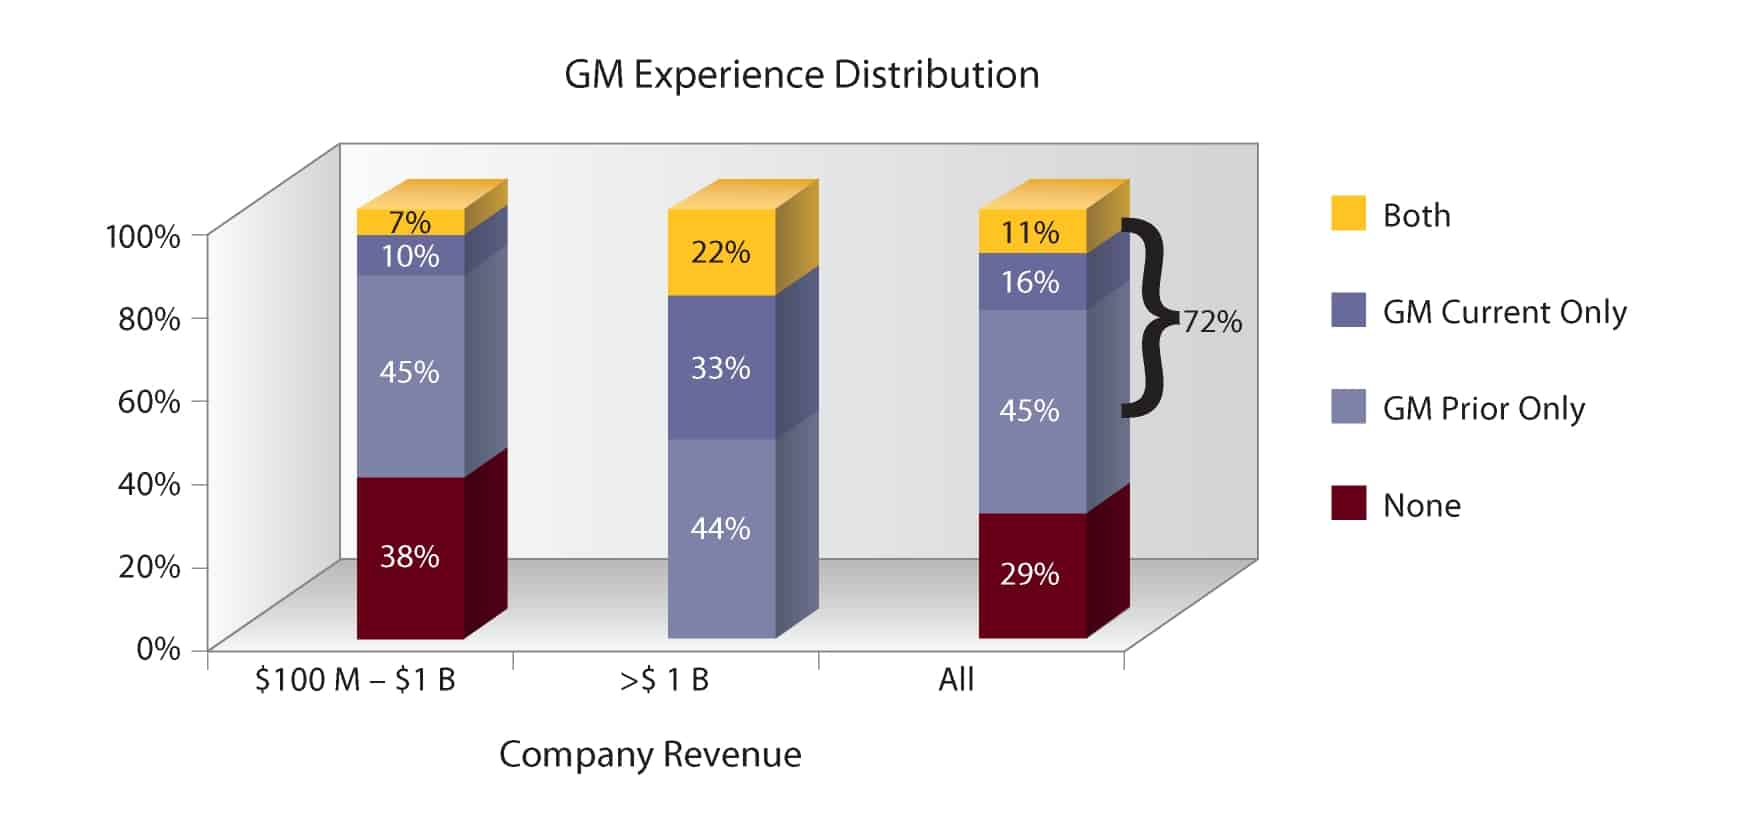 GM experience distribution